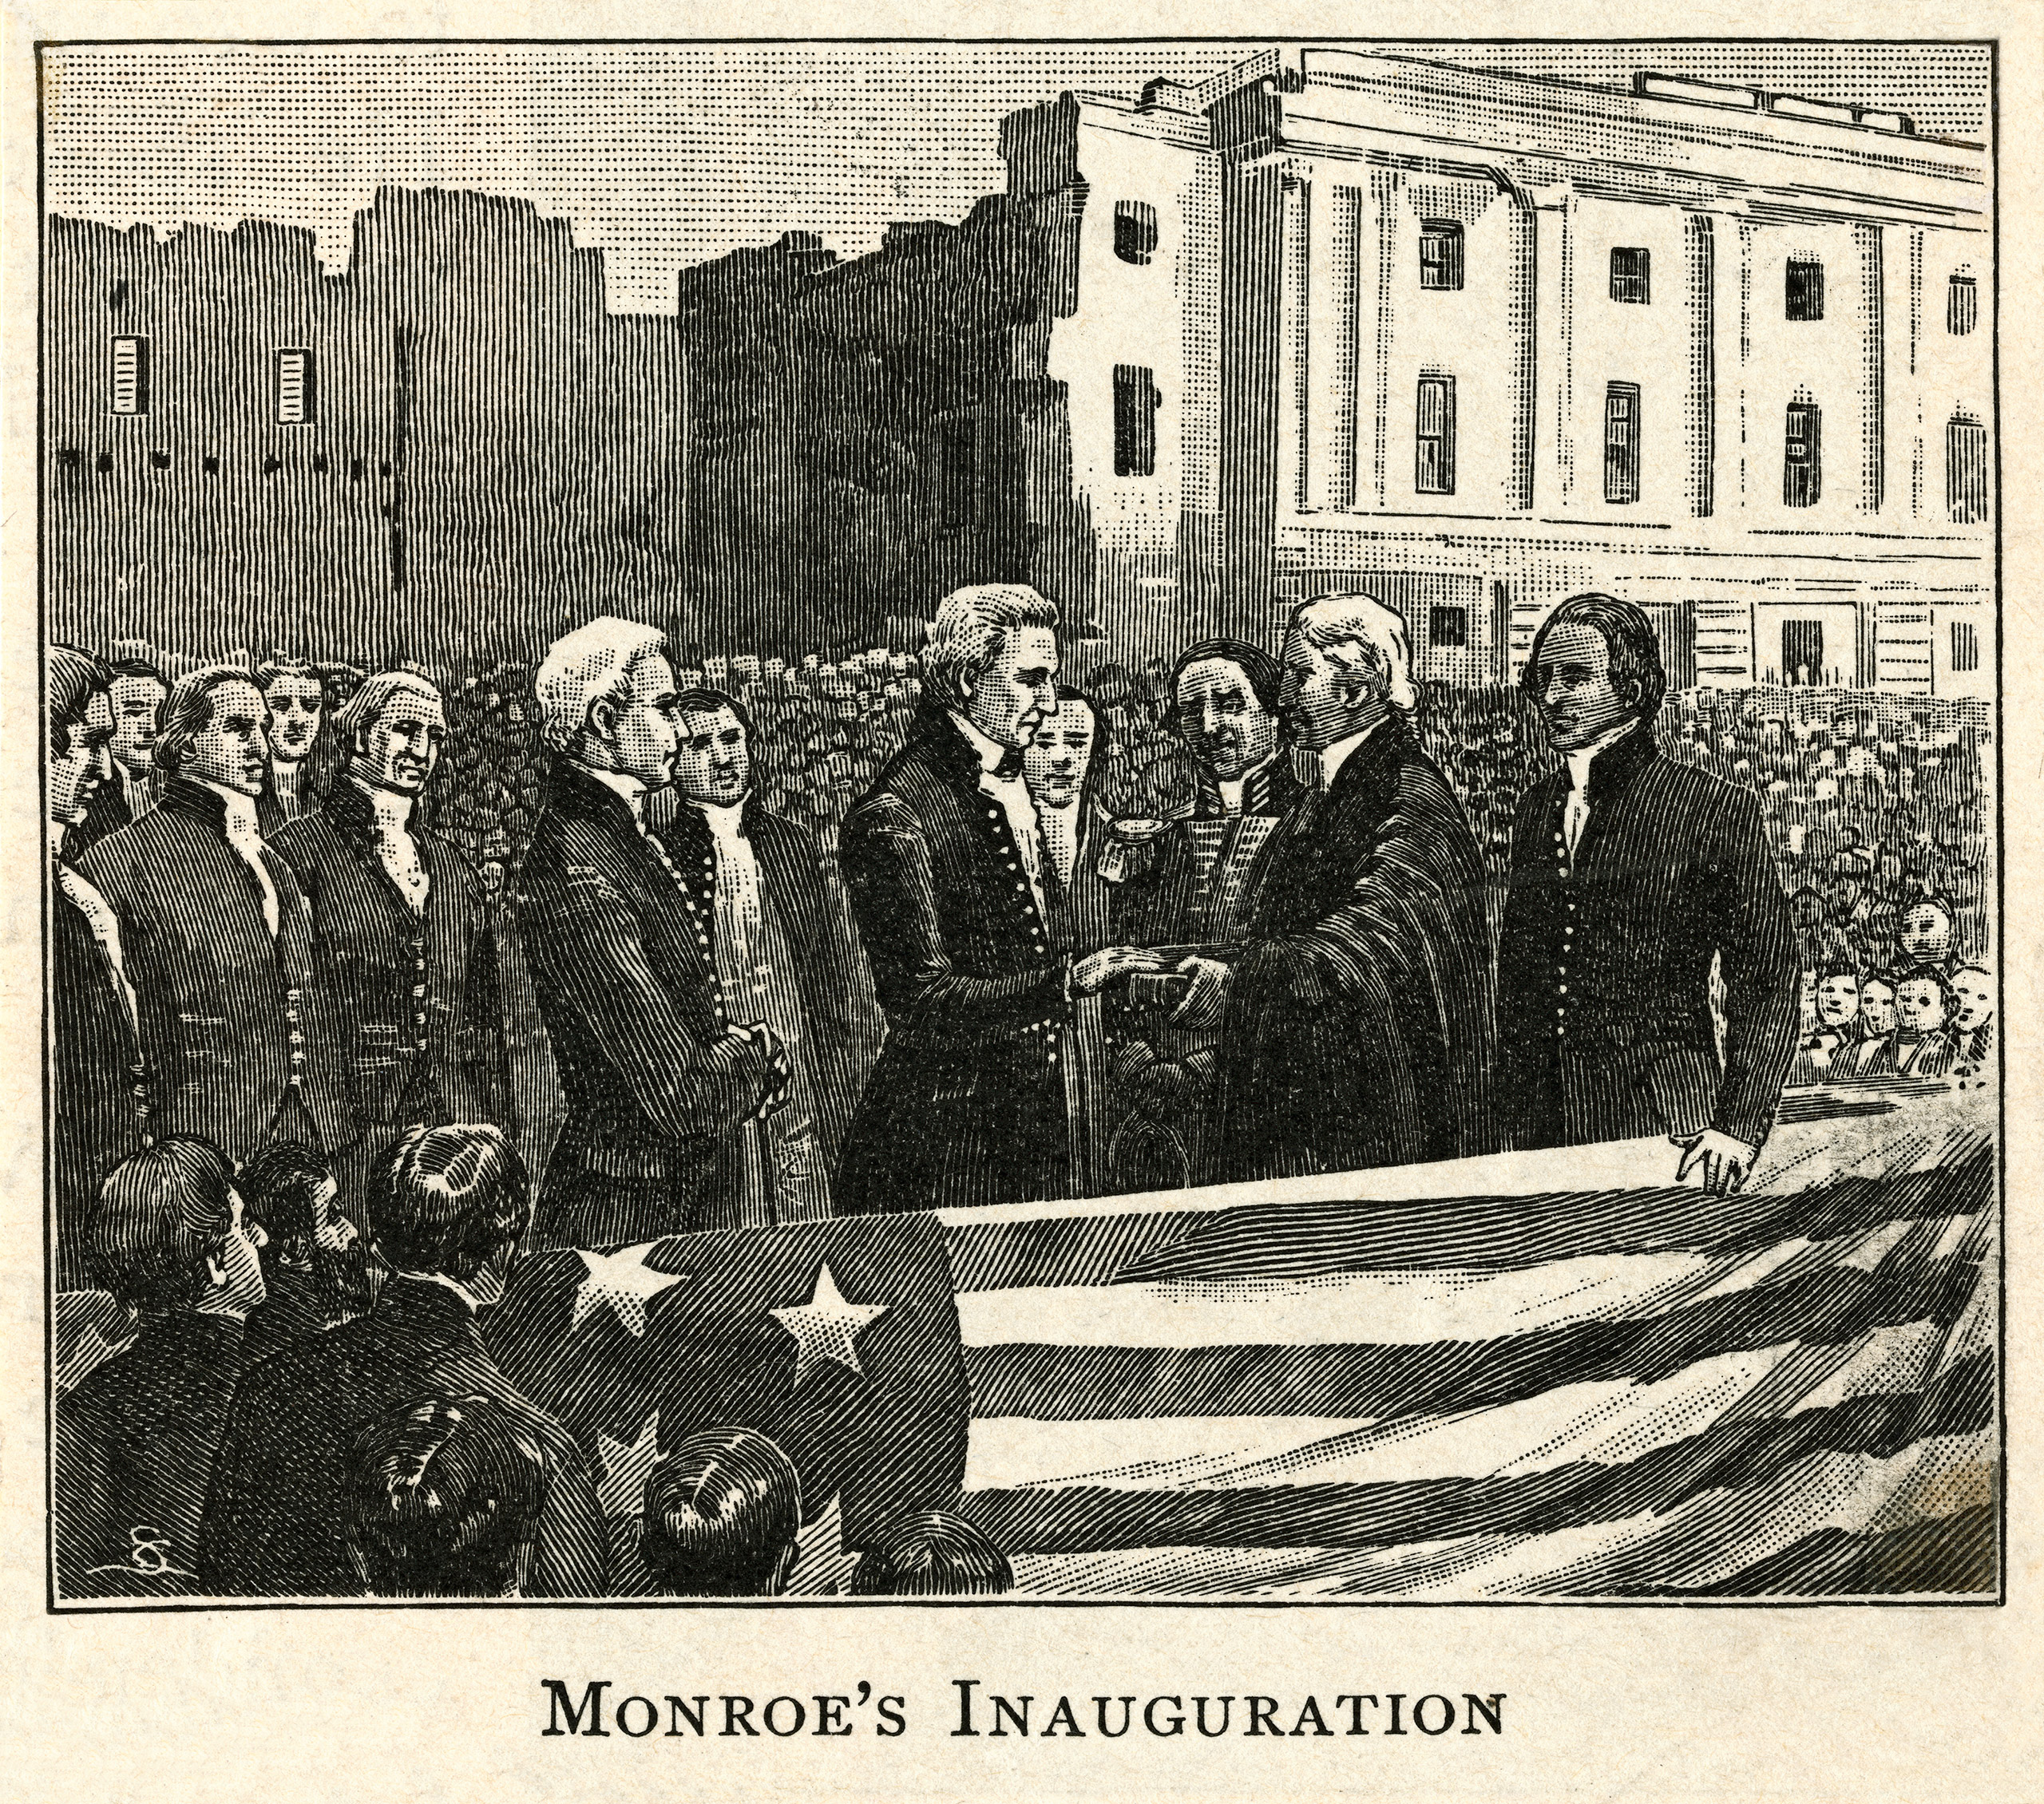 James Monroe's Inauguration as U.S. fifth President, 1817.